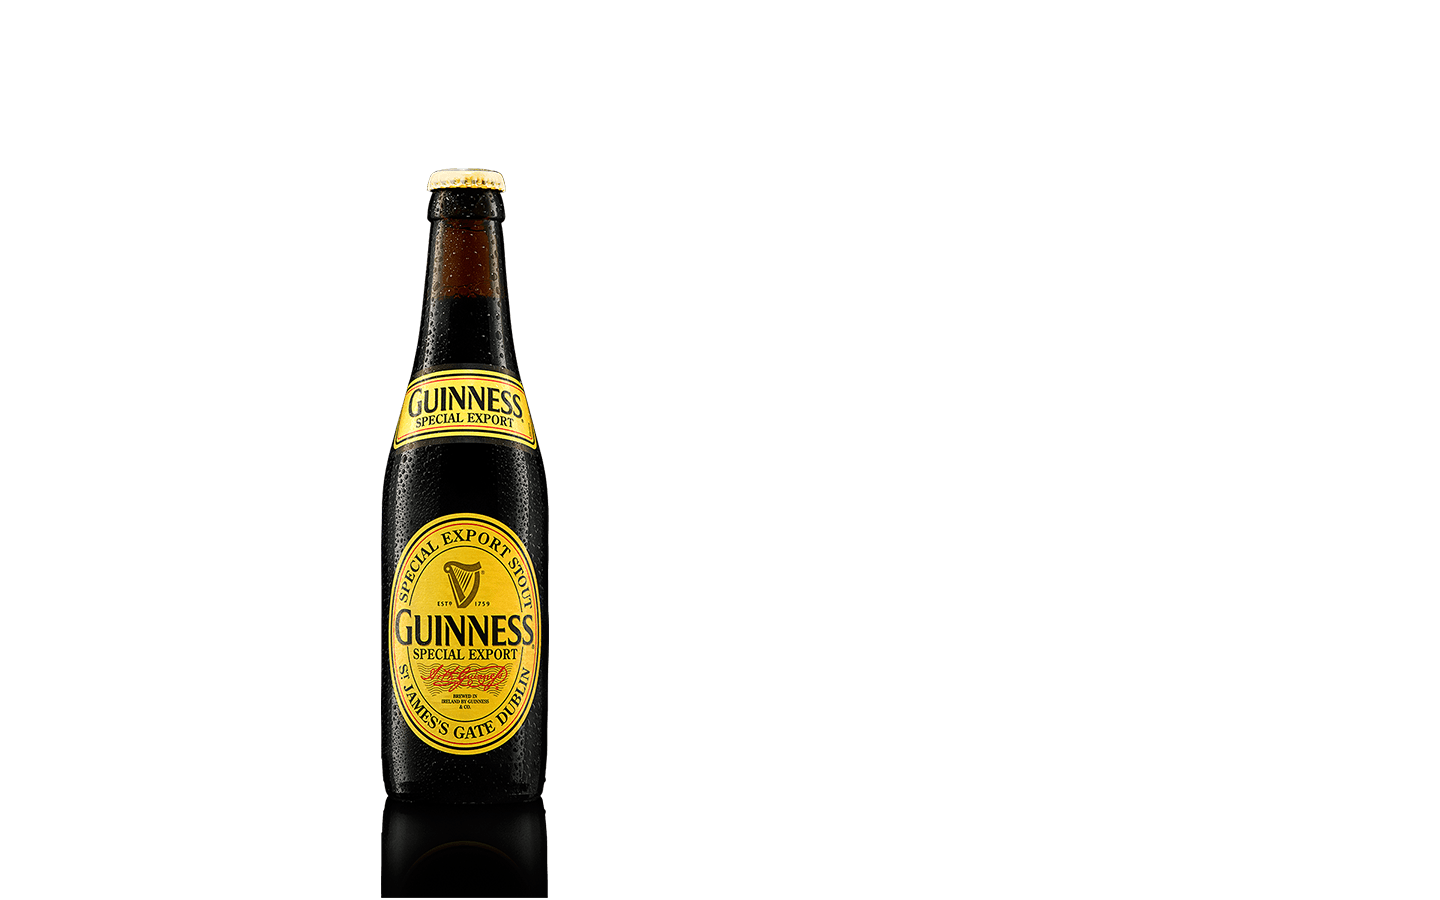 Guinness bottle png. Special export